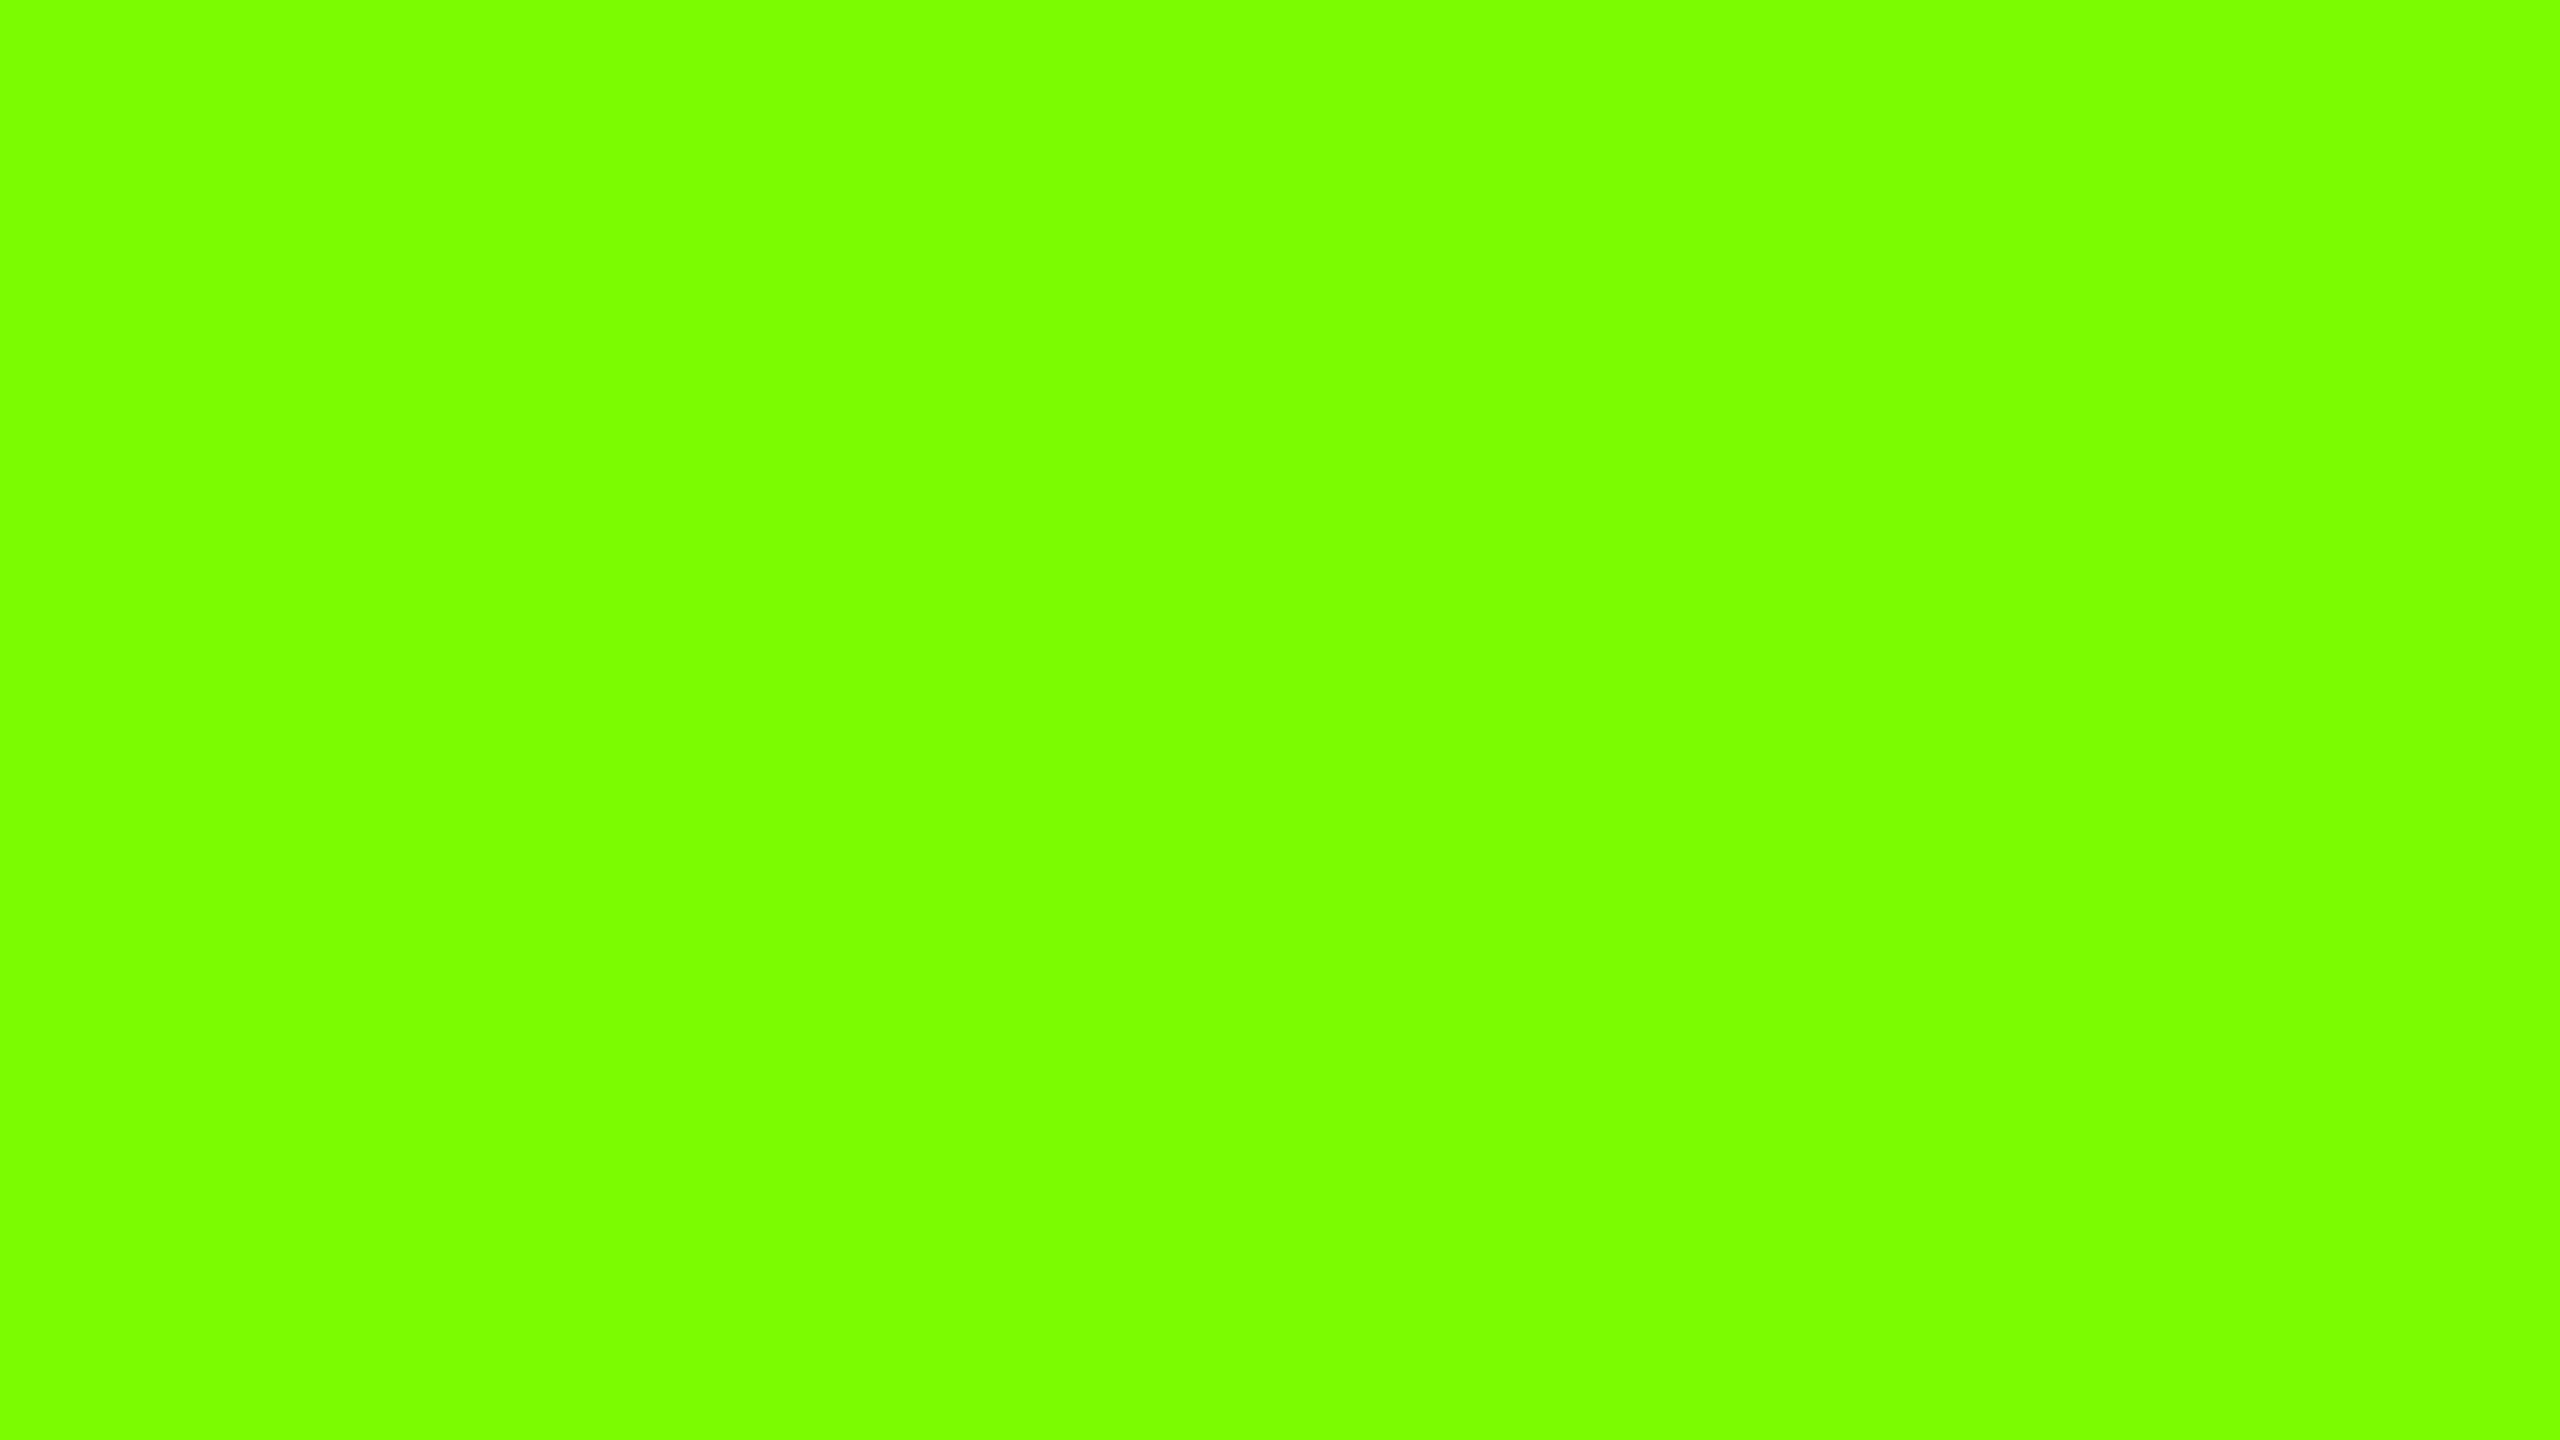 2560x1440 Lawn Green Solid Color Background